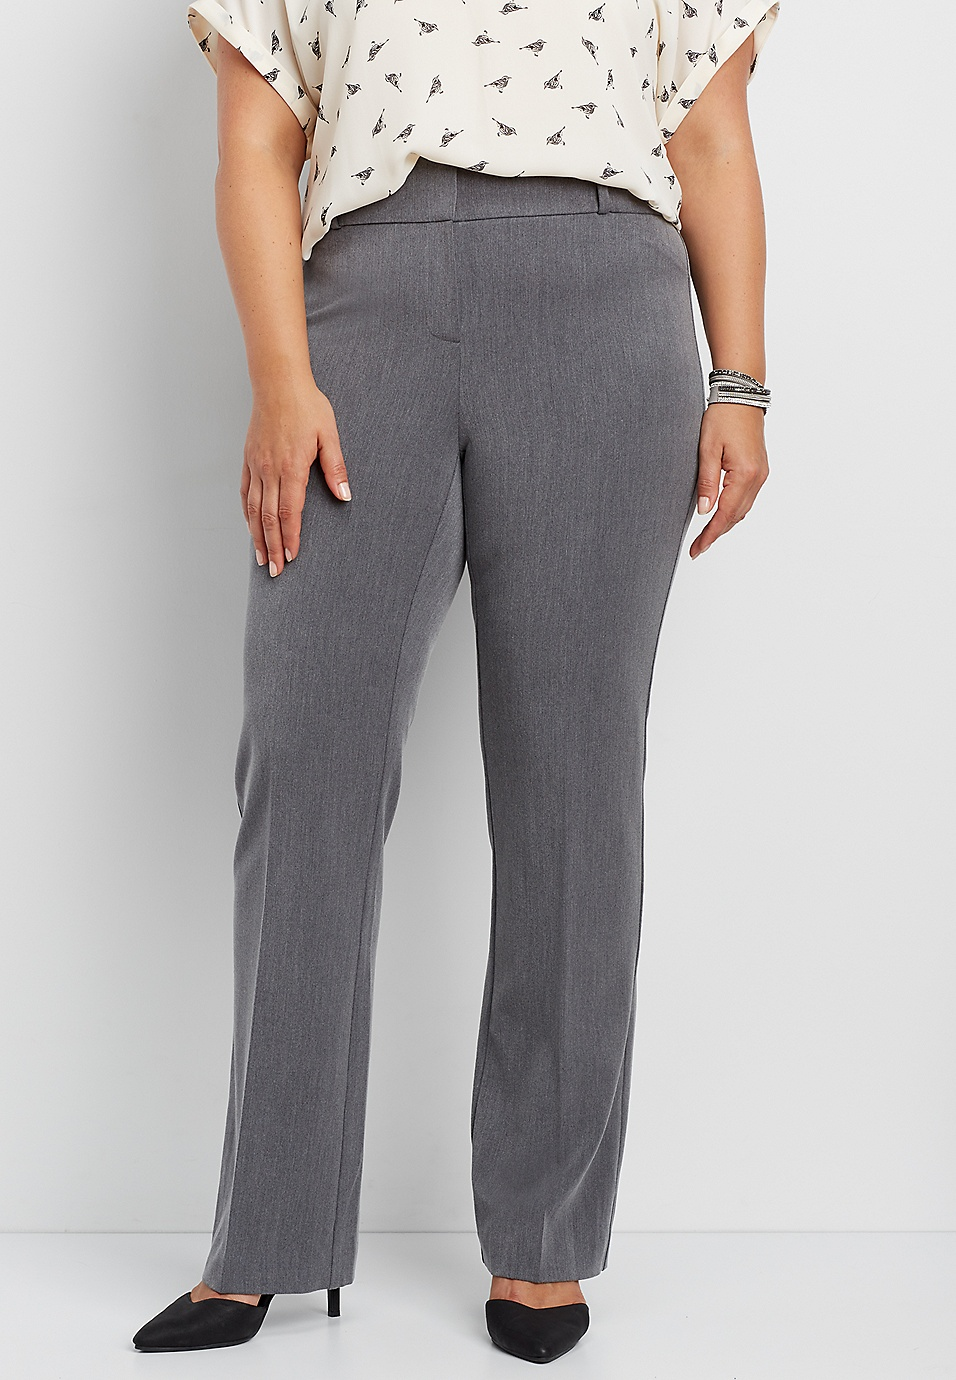 948da79f035 the polished plus size IT fit bootcut pant